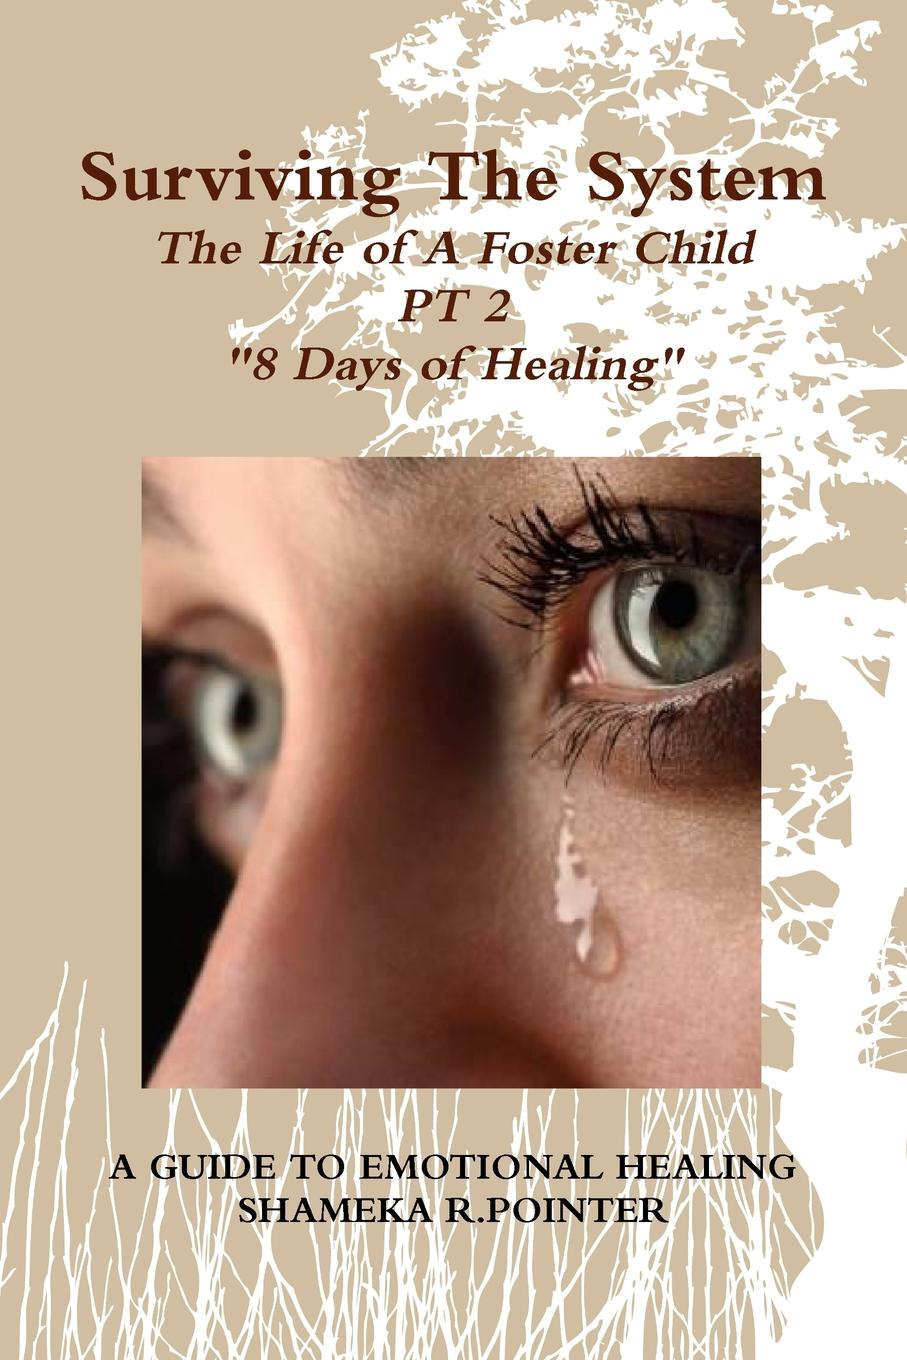 SHAMEKA R. POINTER Surviving The System. The Life of A Foster Child  A Guide To Emotional Healing  thomas fellows forget self help re examining the golden rule